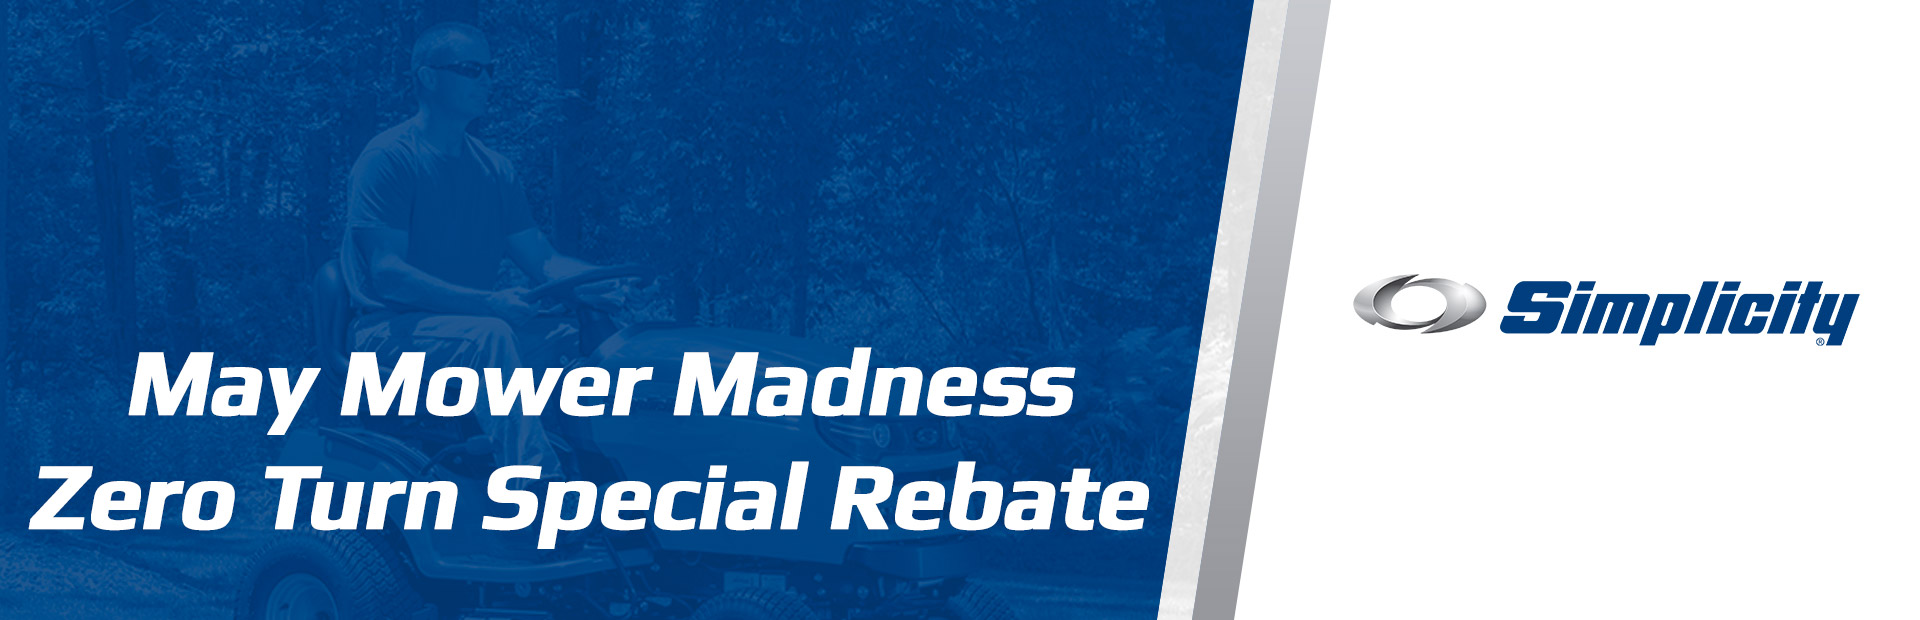 Simplicity: May Mower Madness Zero Turn Special Rebate